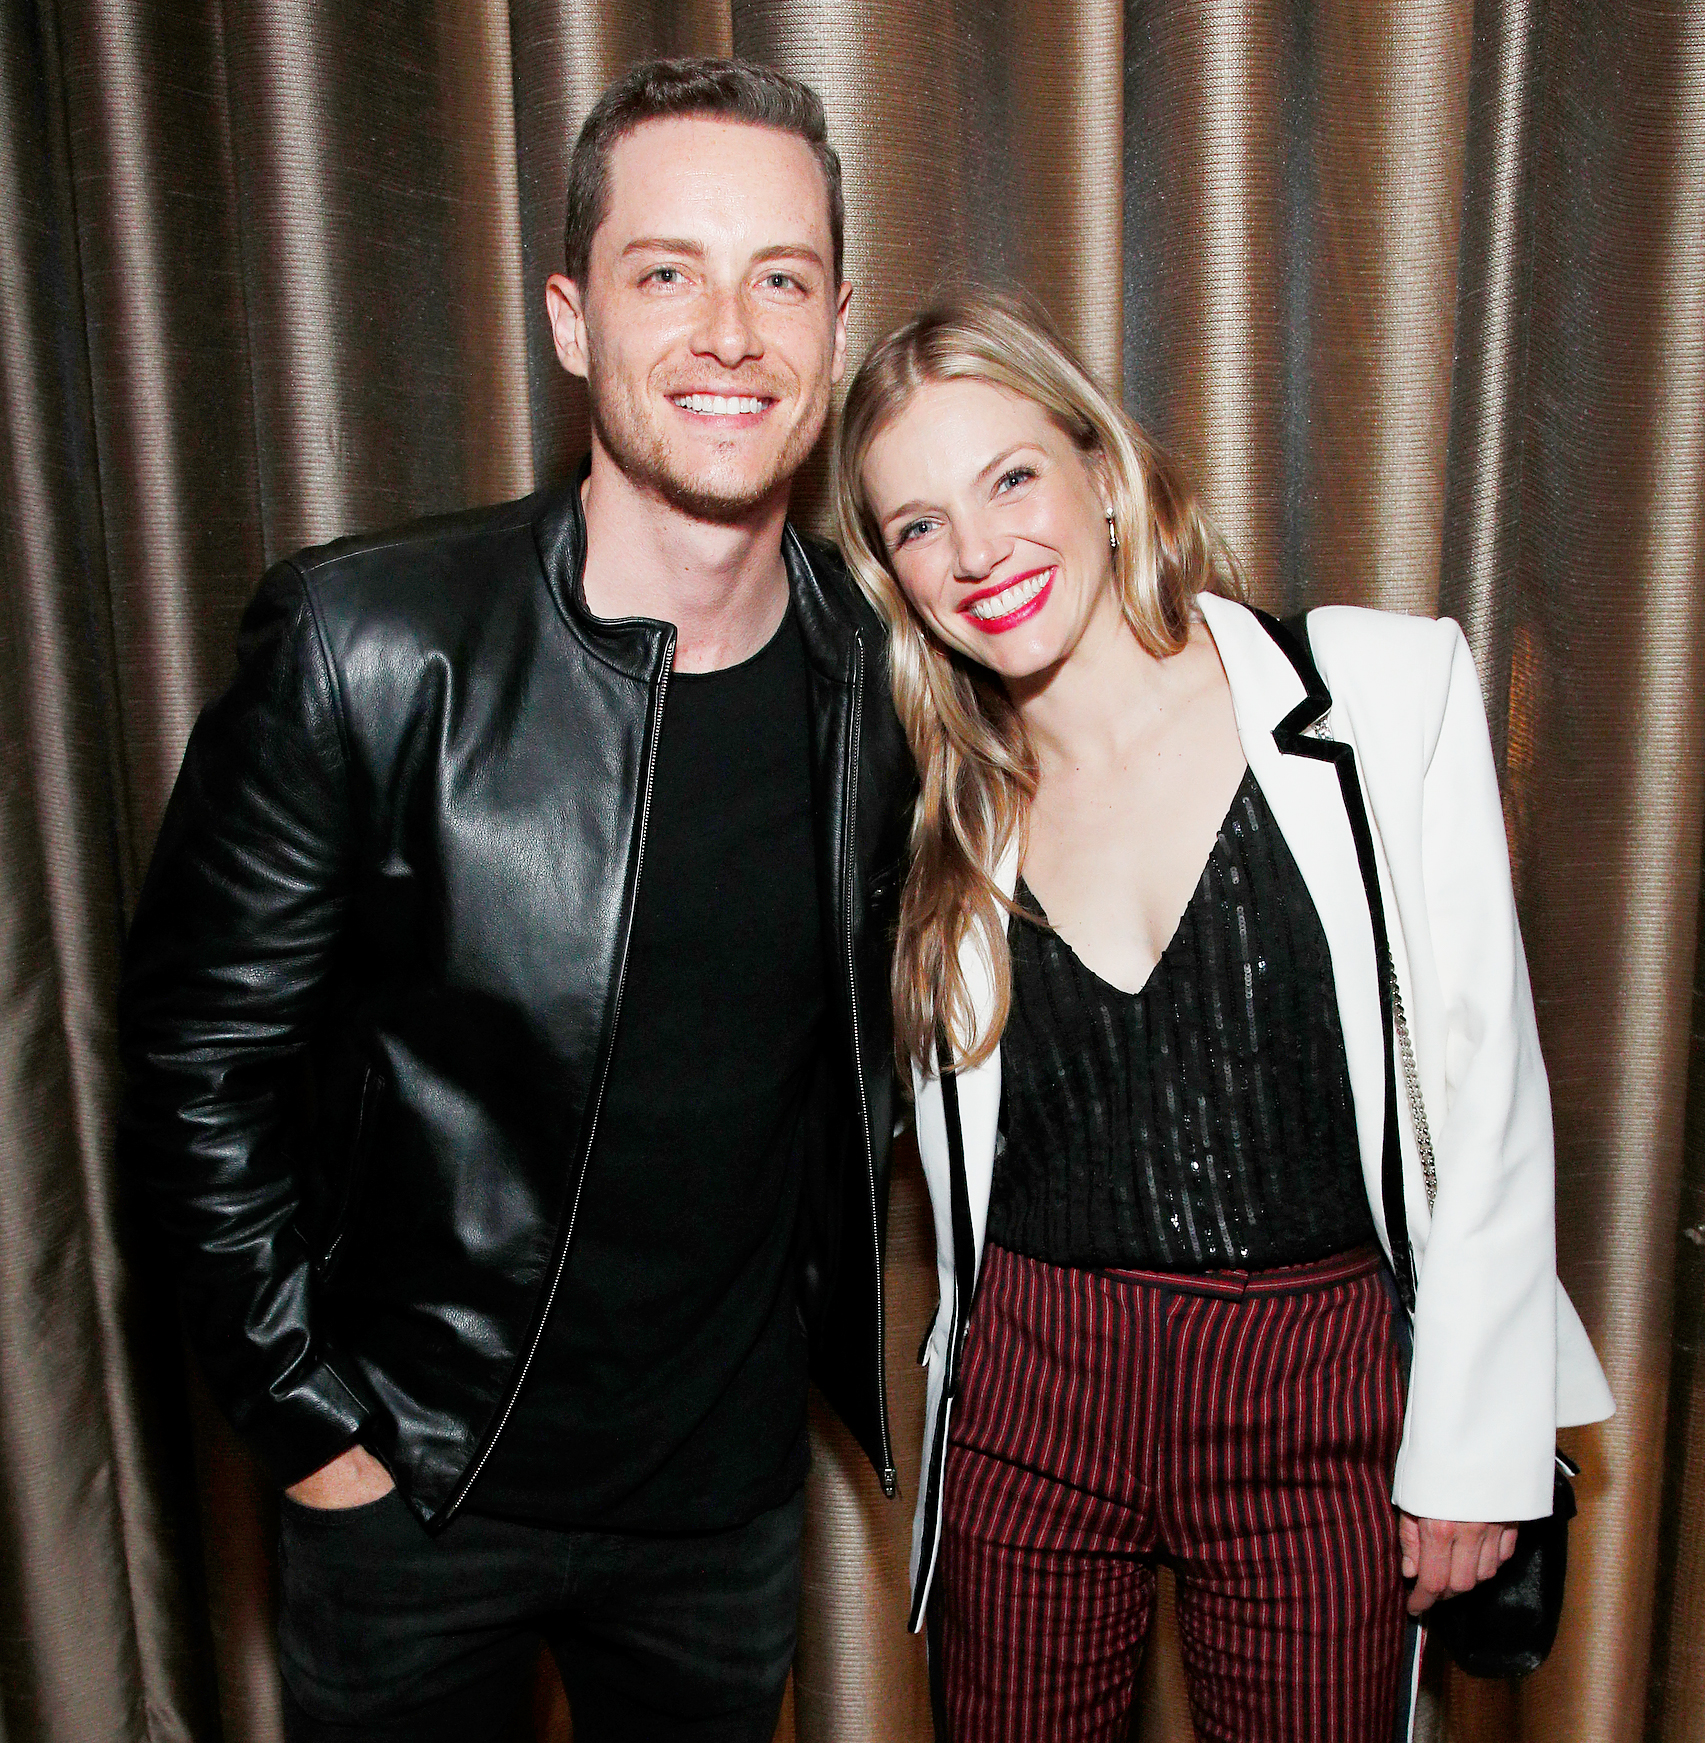 Jesse Lee Soffer photo gallery